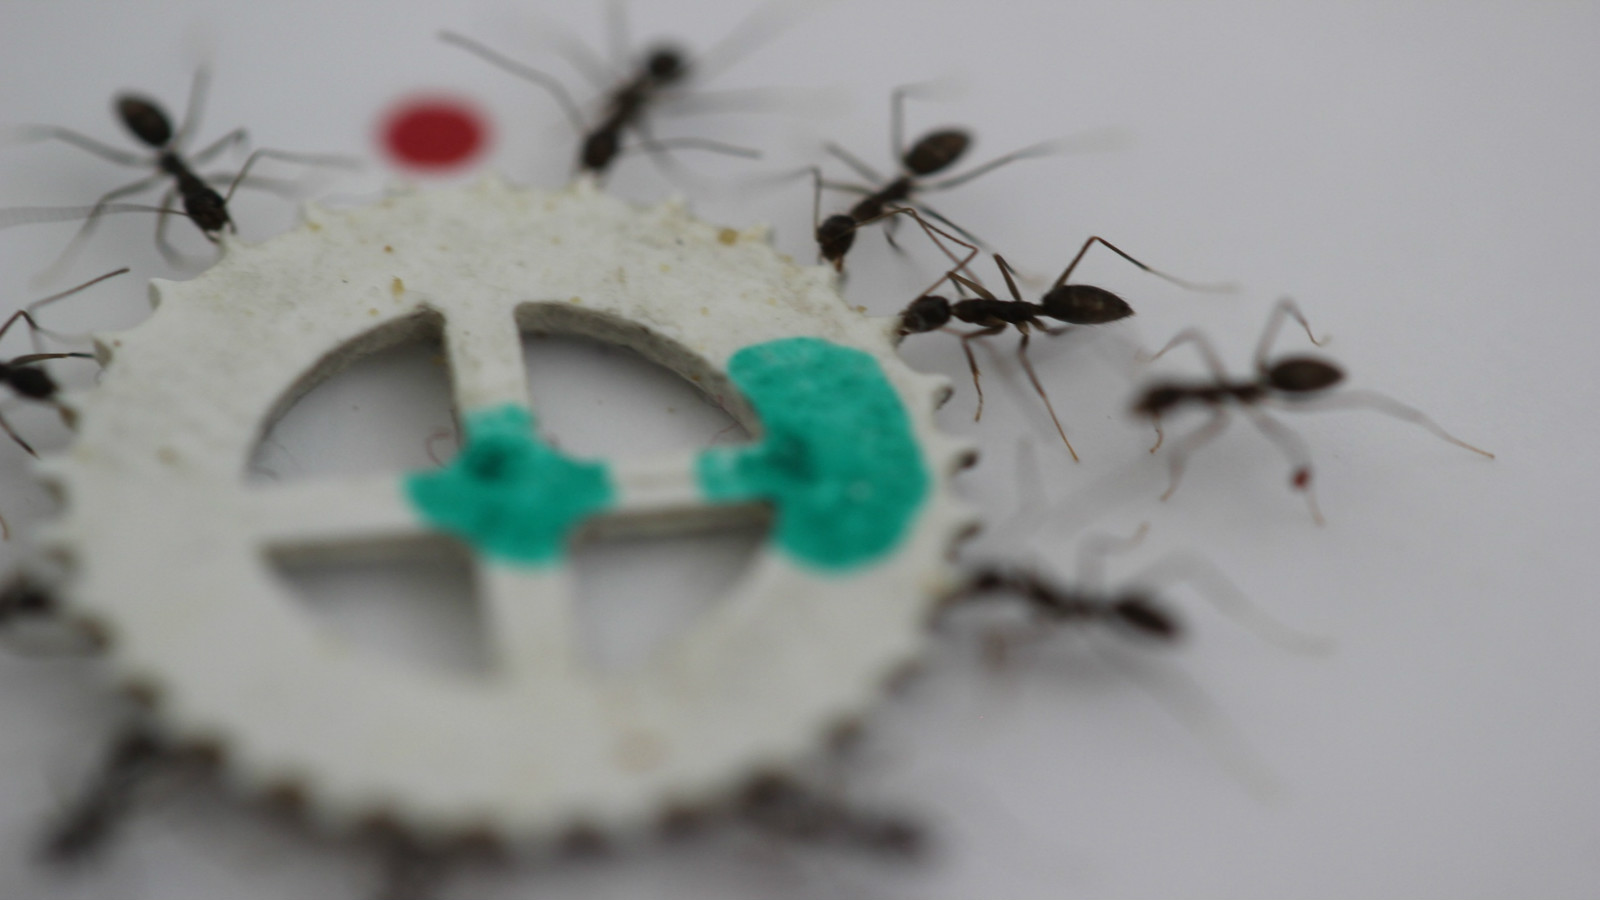 Ants in a group switch off every 10 to 20 seconds as they maneuver food to the nest. Photo courtesy of Weizmann Institute